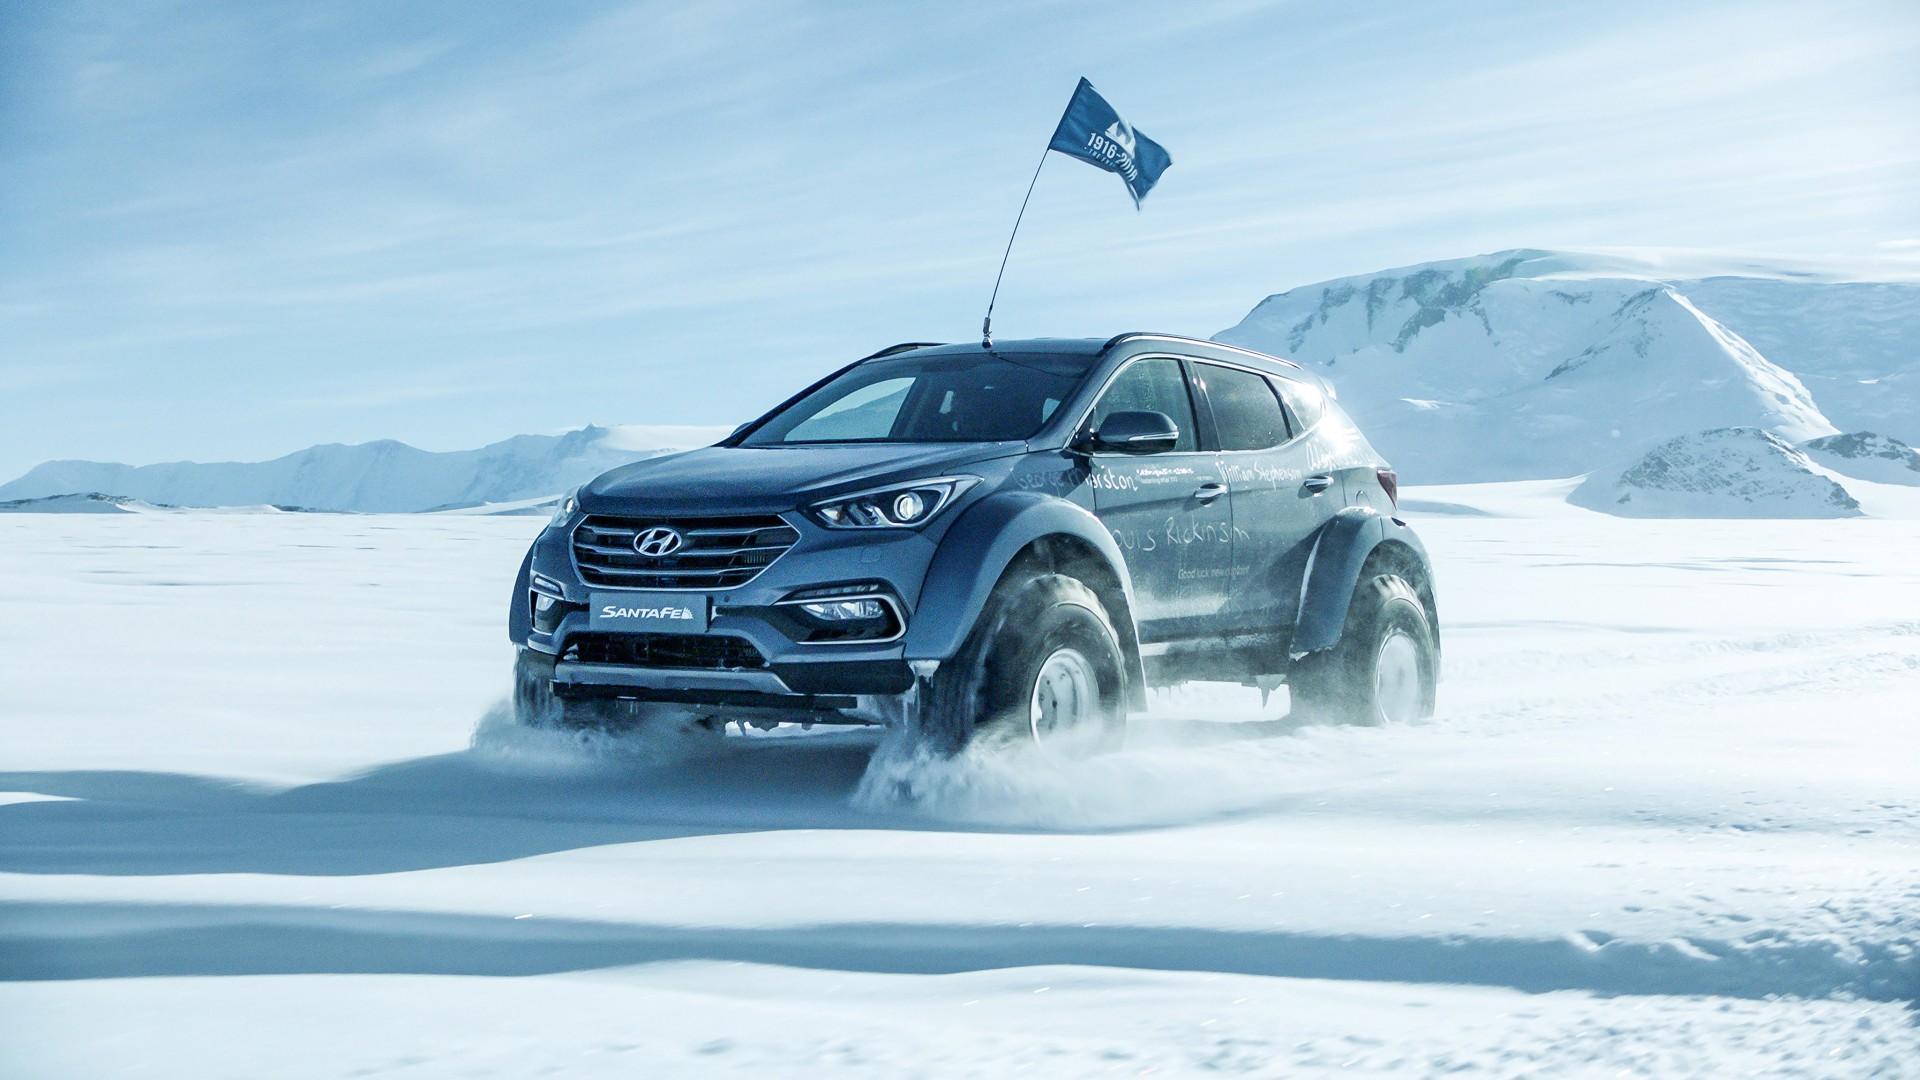 2017 Arctic Trucks Hyundai Santa Fe Wallpaper